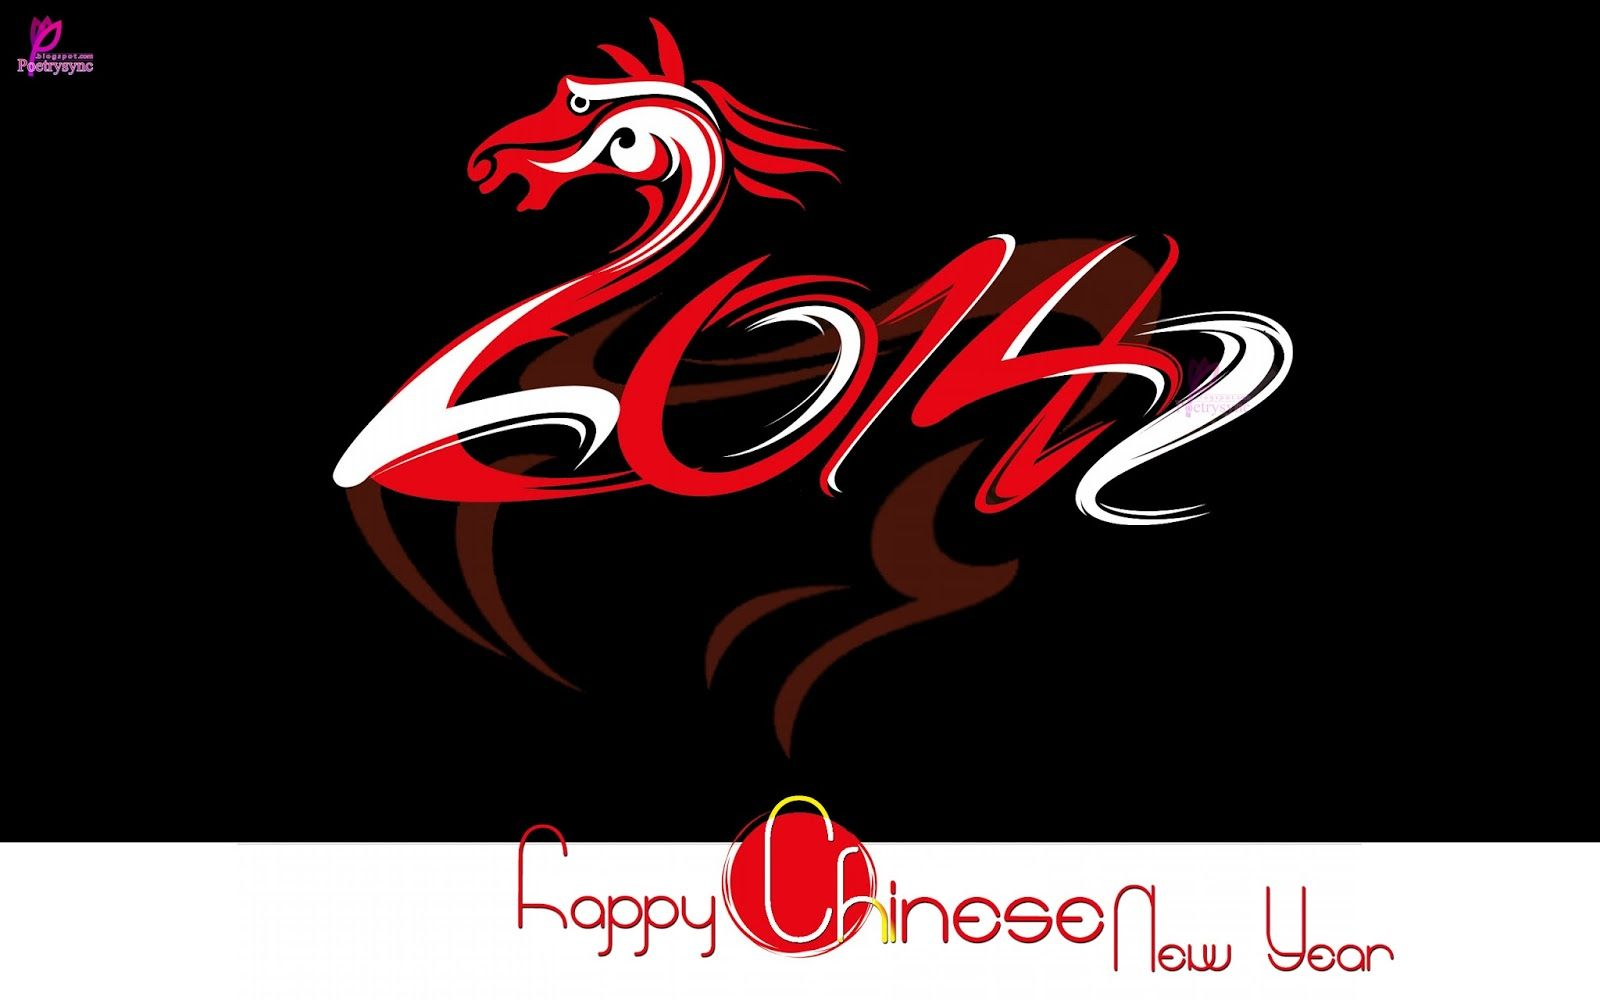 Chinese New Year Wishes Image Wallpaper Happy Lunar New